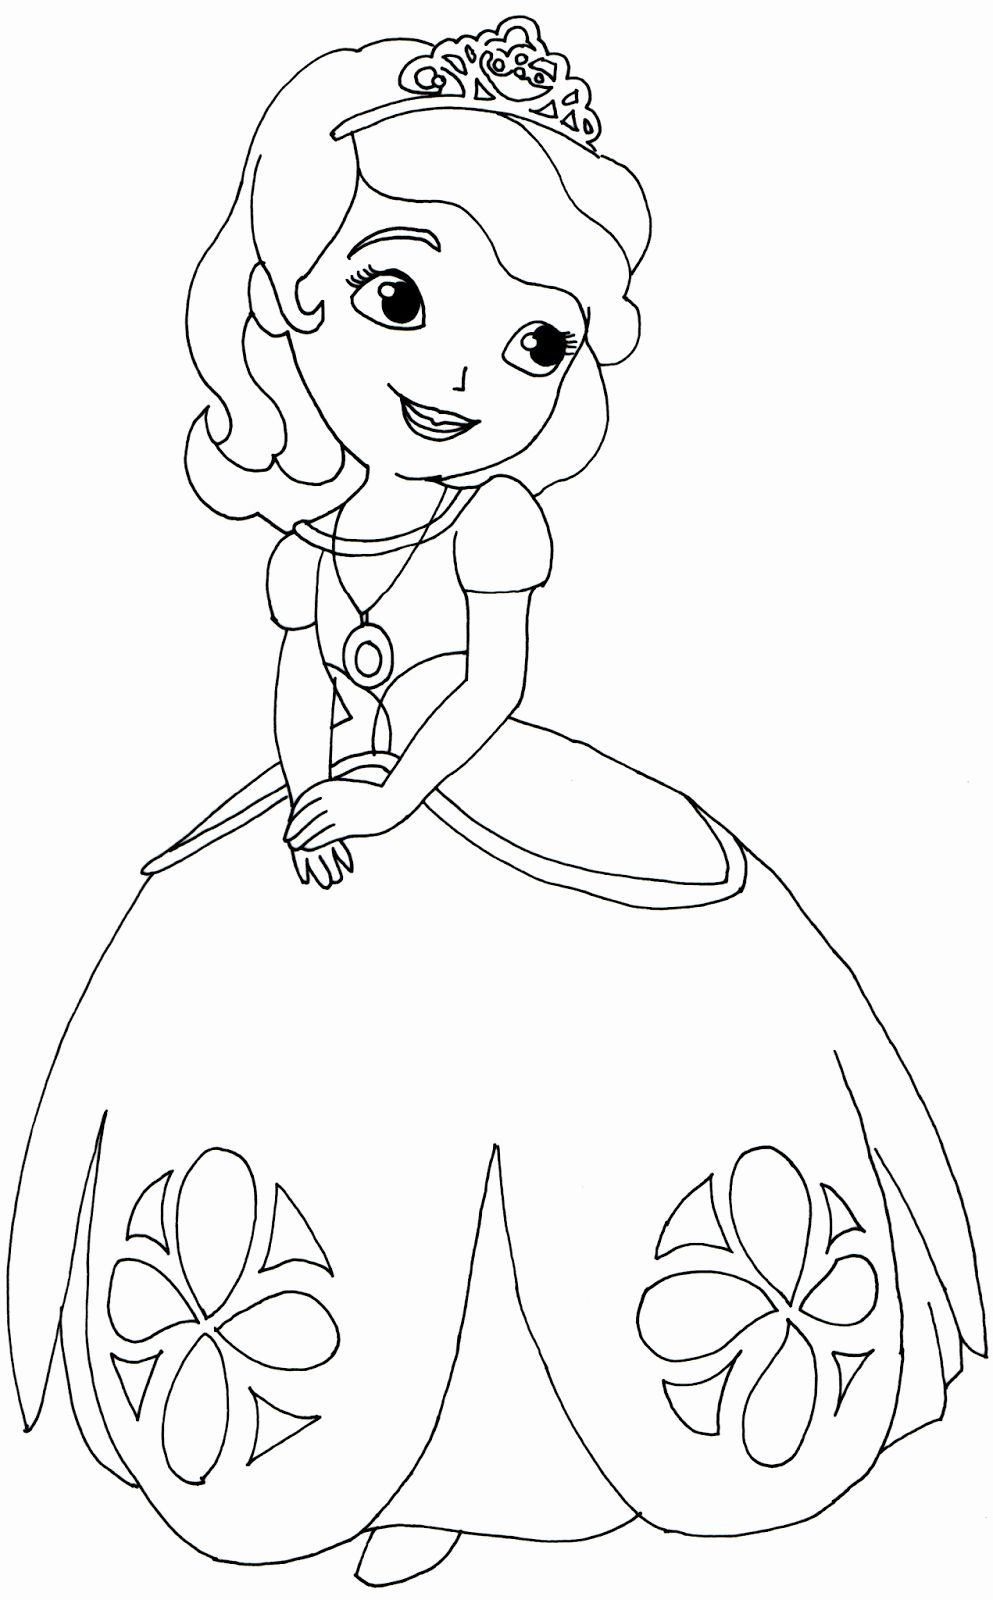 Sofia The First Coloring Book Best Of Sofia The First Coloring Pages Sofia The Princess Coloring Pages Cartoon Coloring Pages Disney Coloring Pages Printables